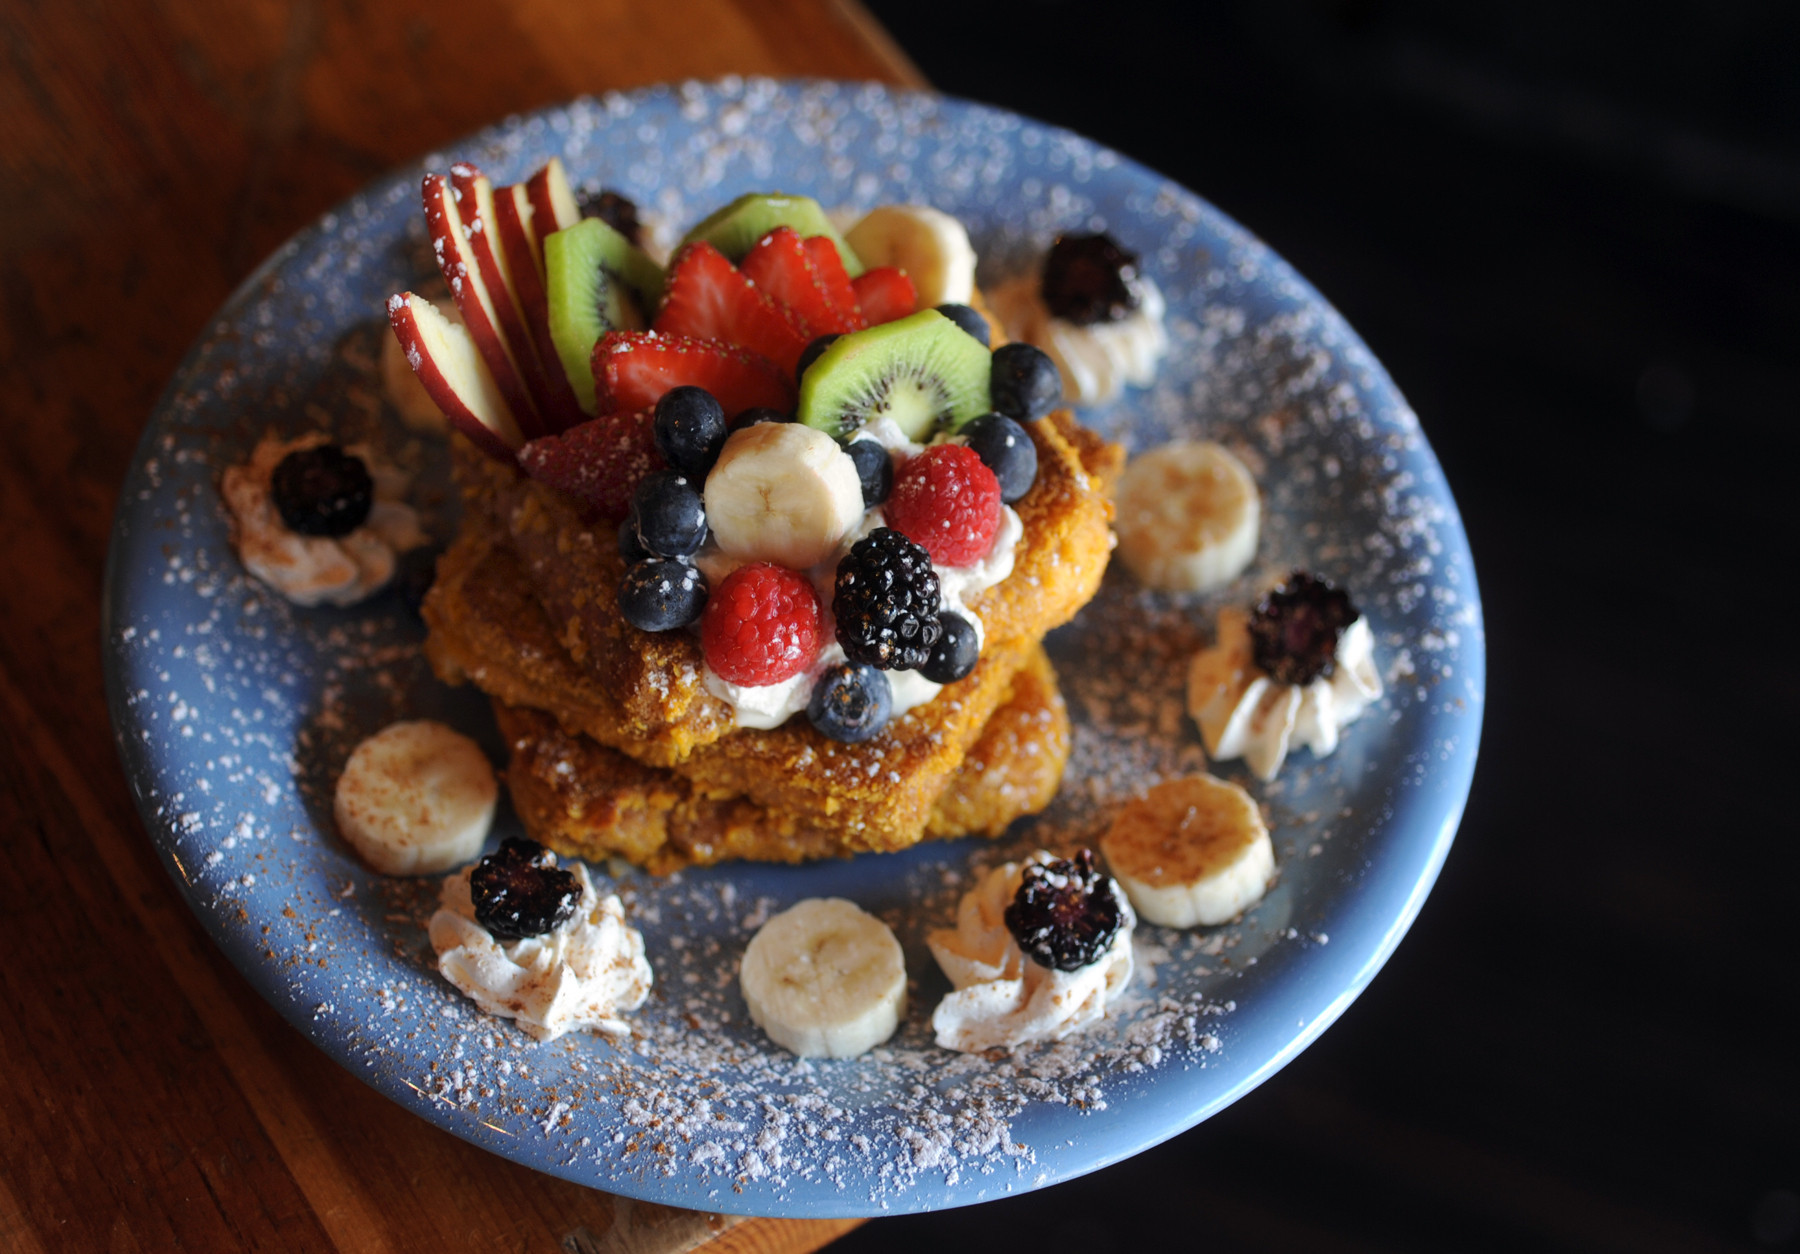 50 things Baltimore foodies must try [Pictures] - Breakfast at Blue Moon Cafe down in Fells Point.